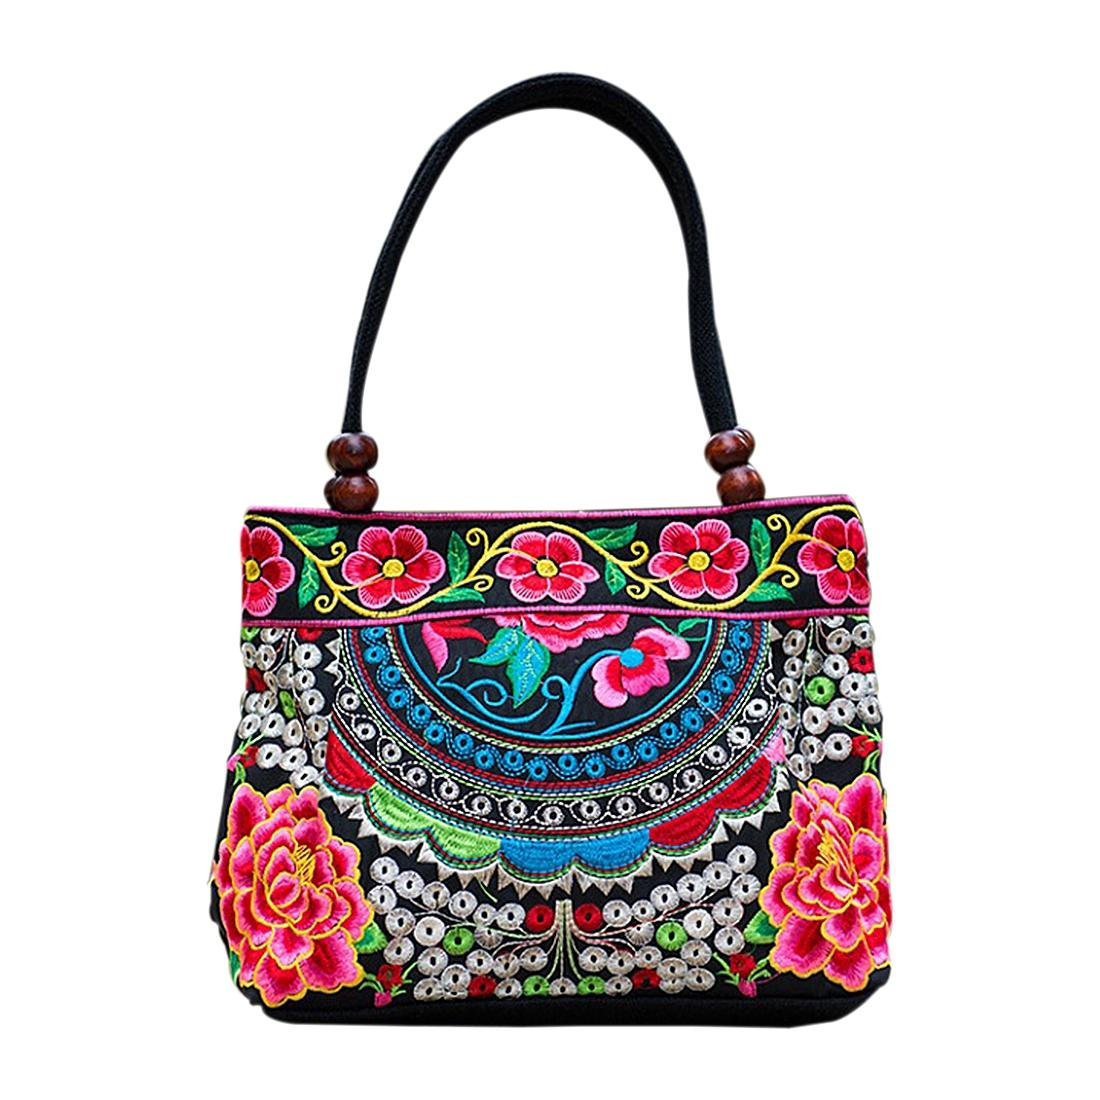 Wholesale Chinese Style Women Handbag Embroidery Ethnic Summer Fashion  Handmade Flowers Ladies Tote Shoulder Bags Cross Body Bags Cheap Handbags  Handbags ... f81f386ad8119